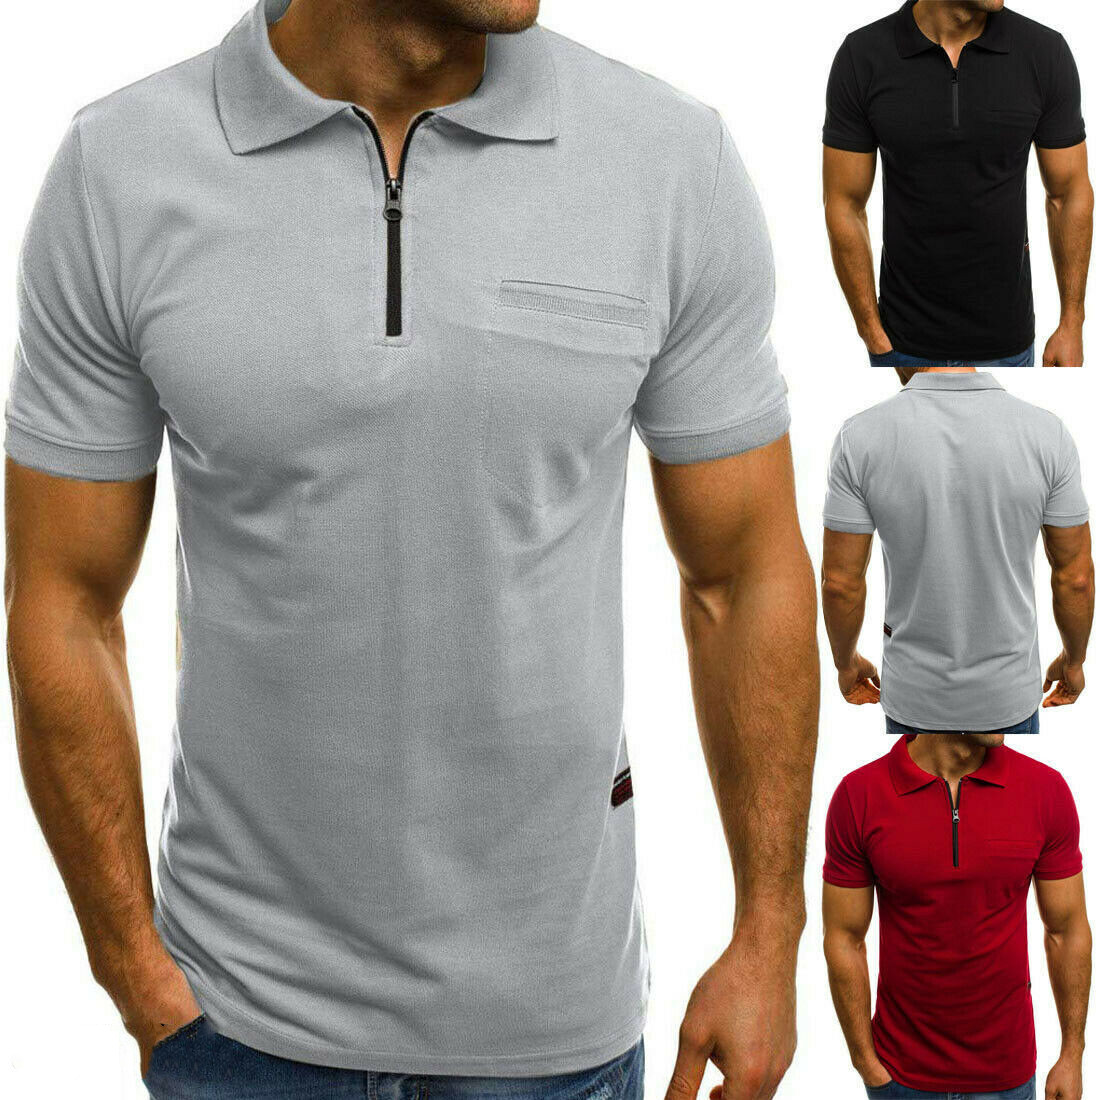 2019 New Men Slim   Polo   Shirts Short Sleeve Casual Golf PoloShirt Jersey Solid Black Red arrival Top Tees High Quality Plus Size